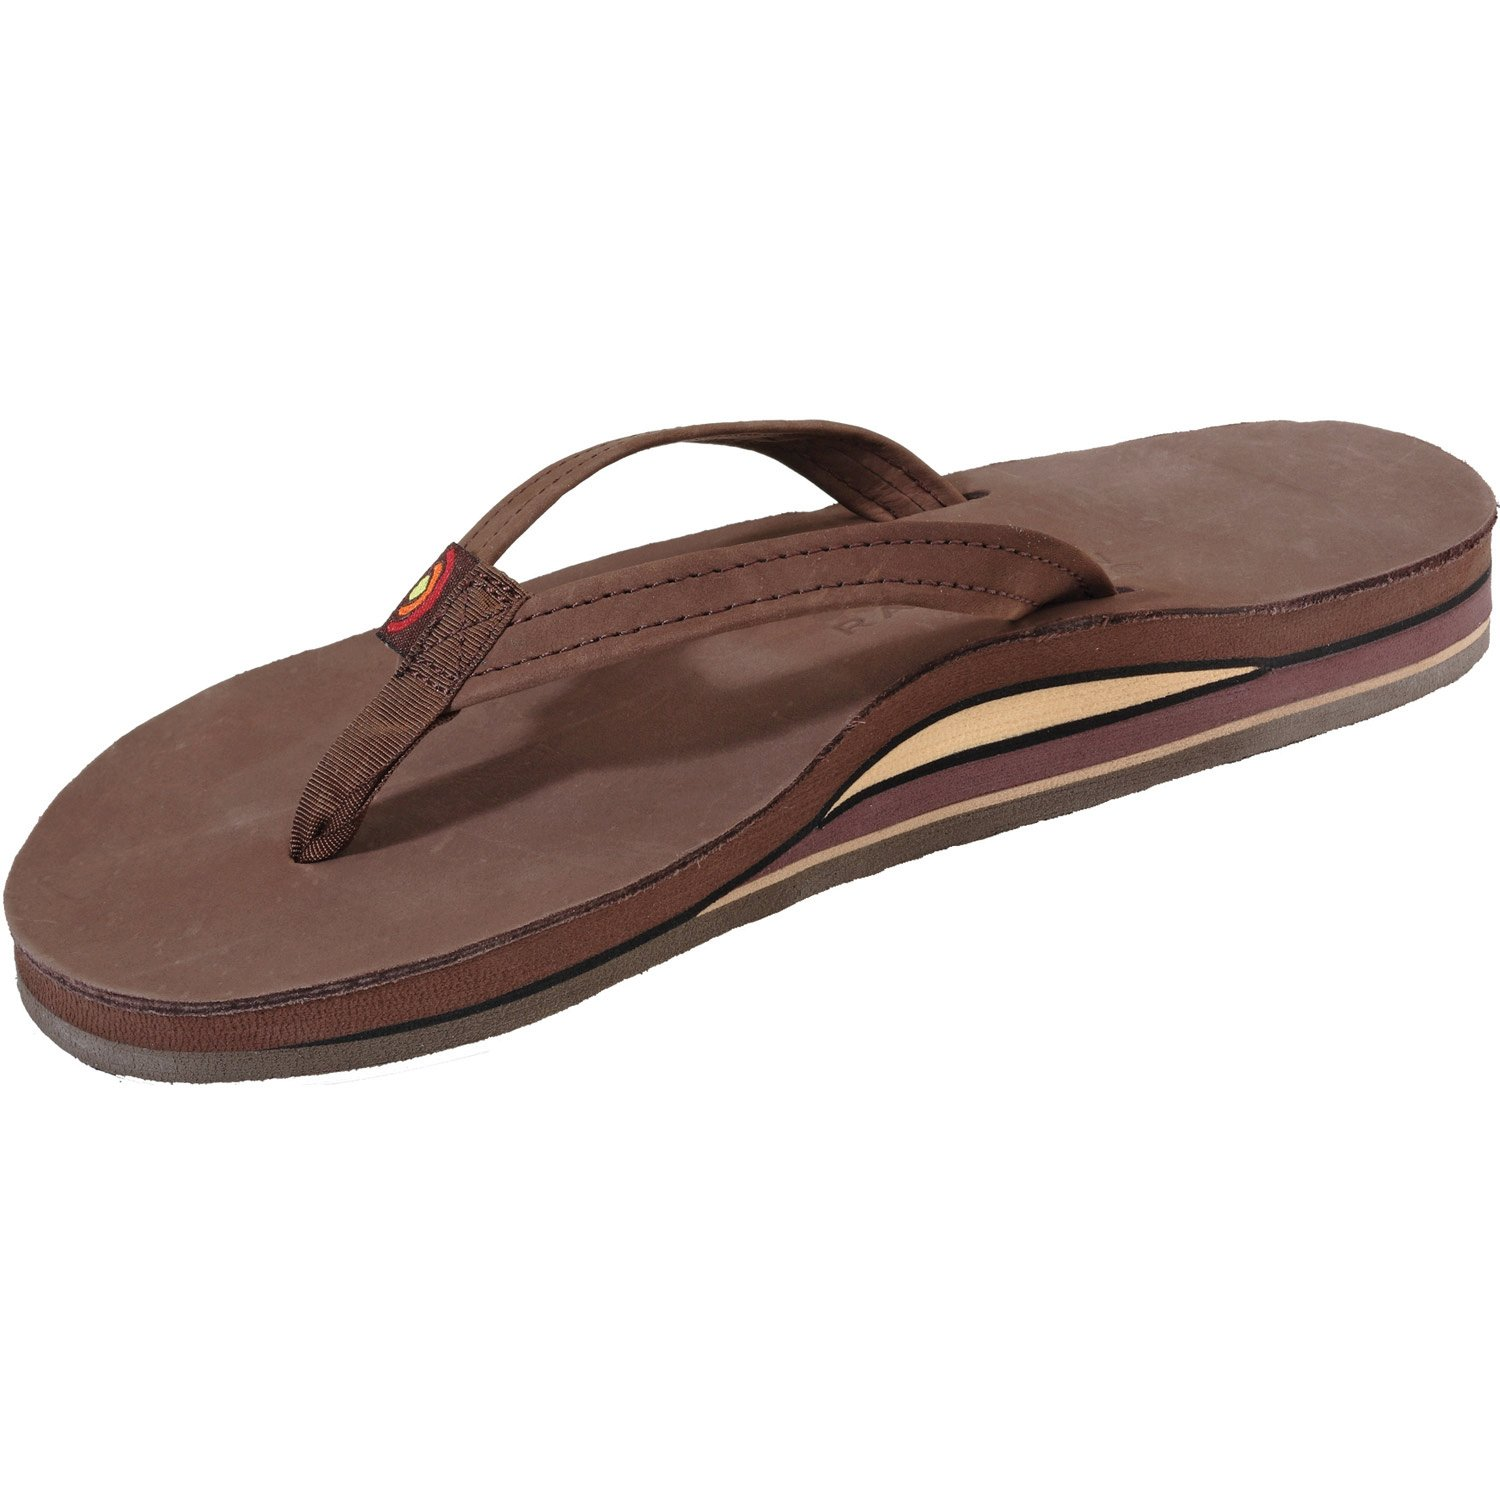 20a40622049a Rainbow Sandals Womens Premier Leather Double Layer Arch Narrow Strap -  Expresso L10  Amazon.co.uk  Shoes   Bags